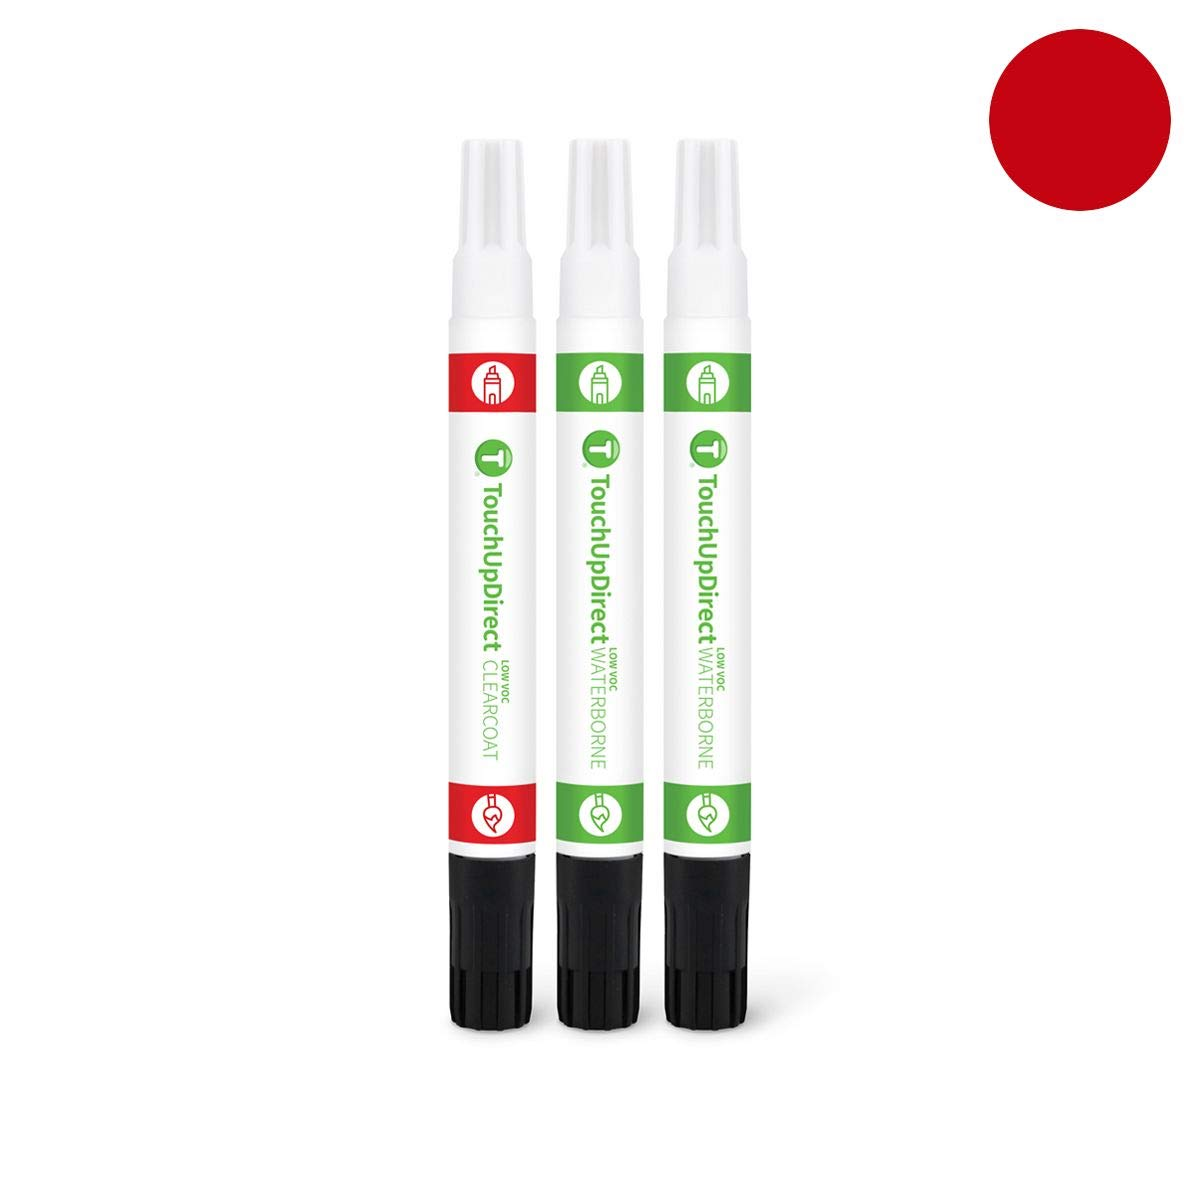 TouchUpDirect for Mazda Exact Match Automotive Touch Up Paint - Soul Red Metallic (41V) by T TouchUpDirect